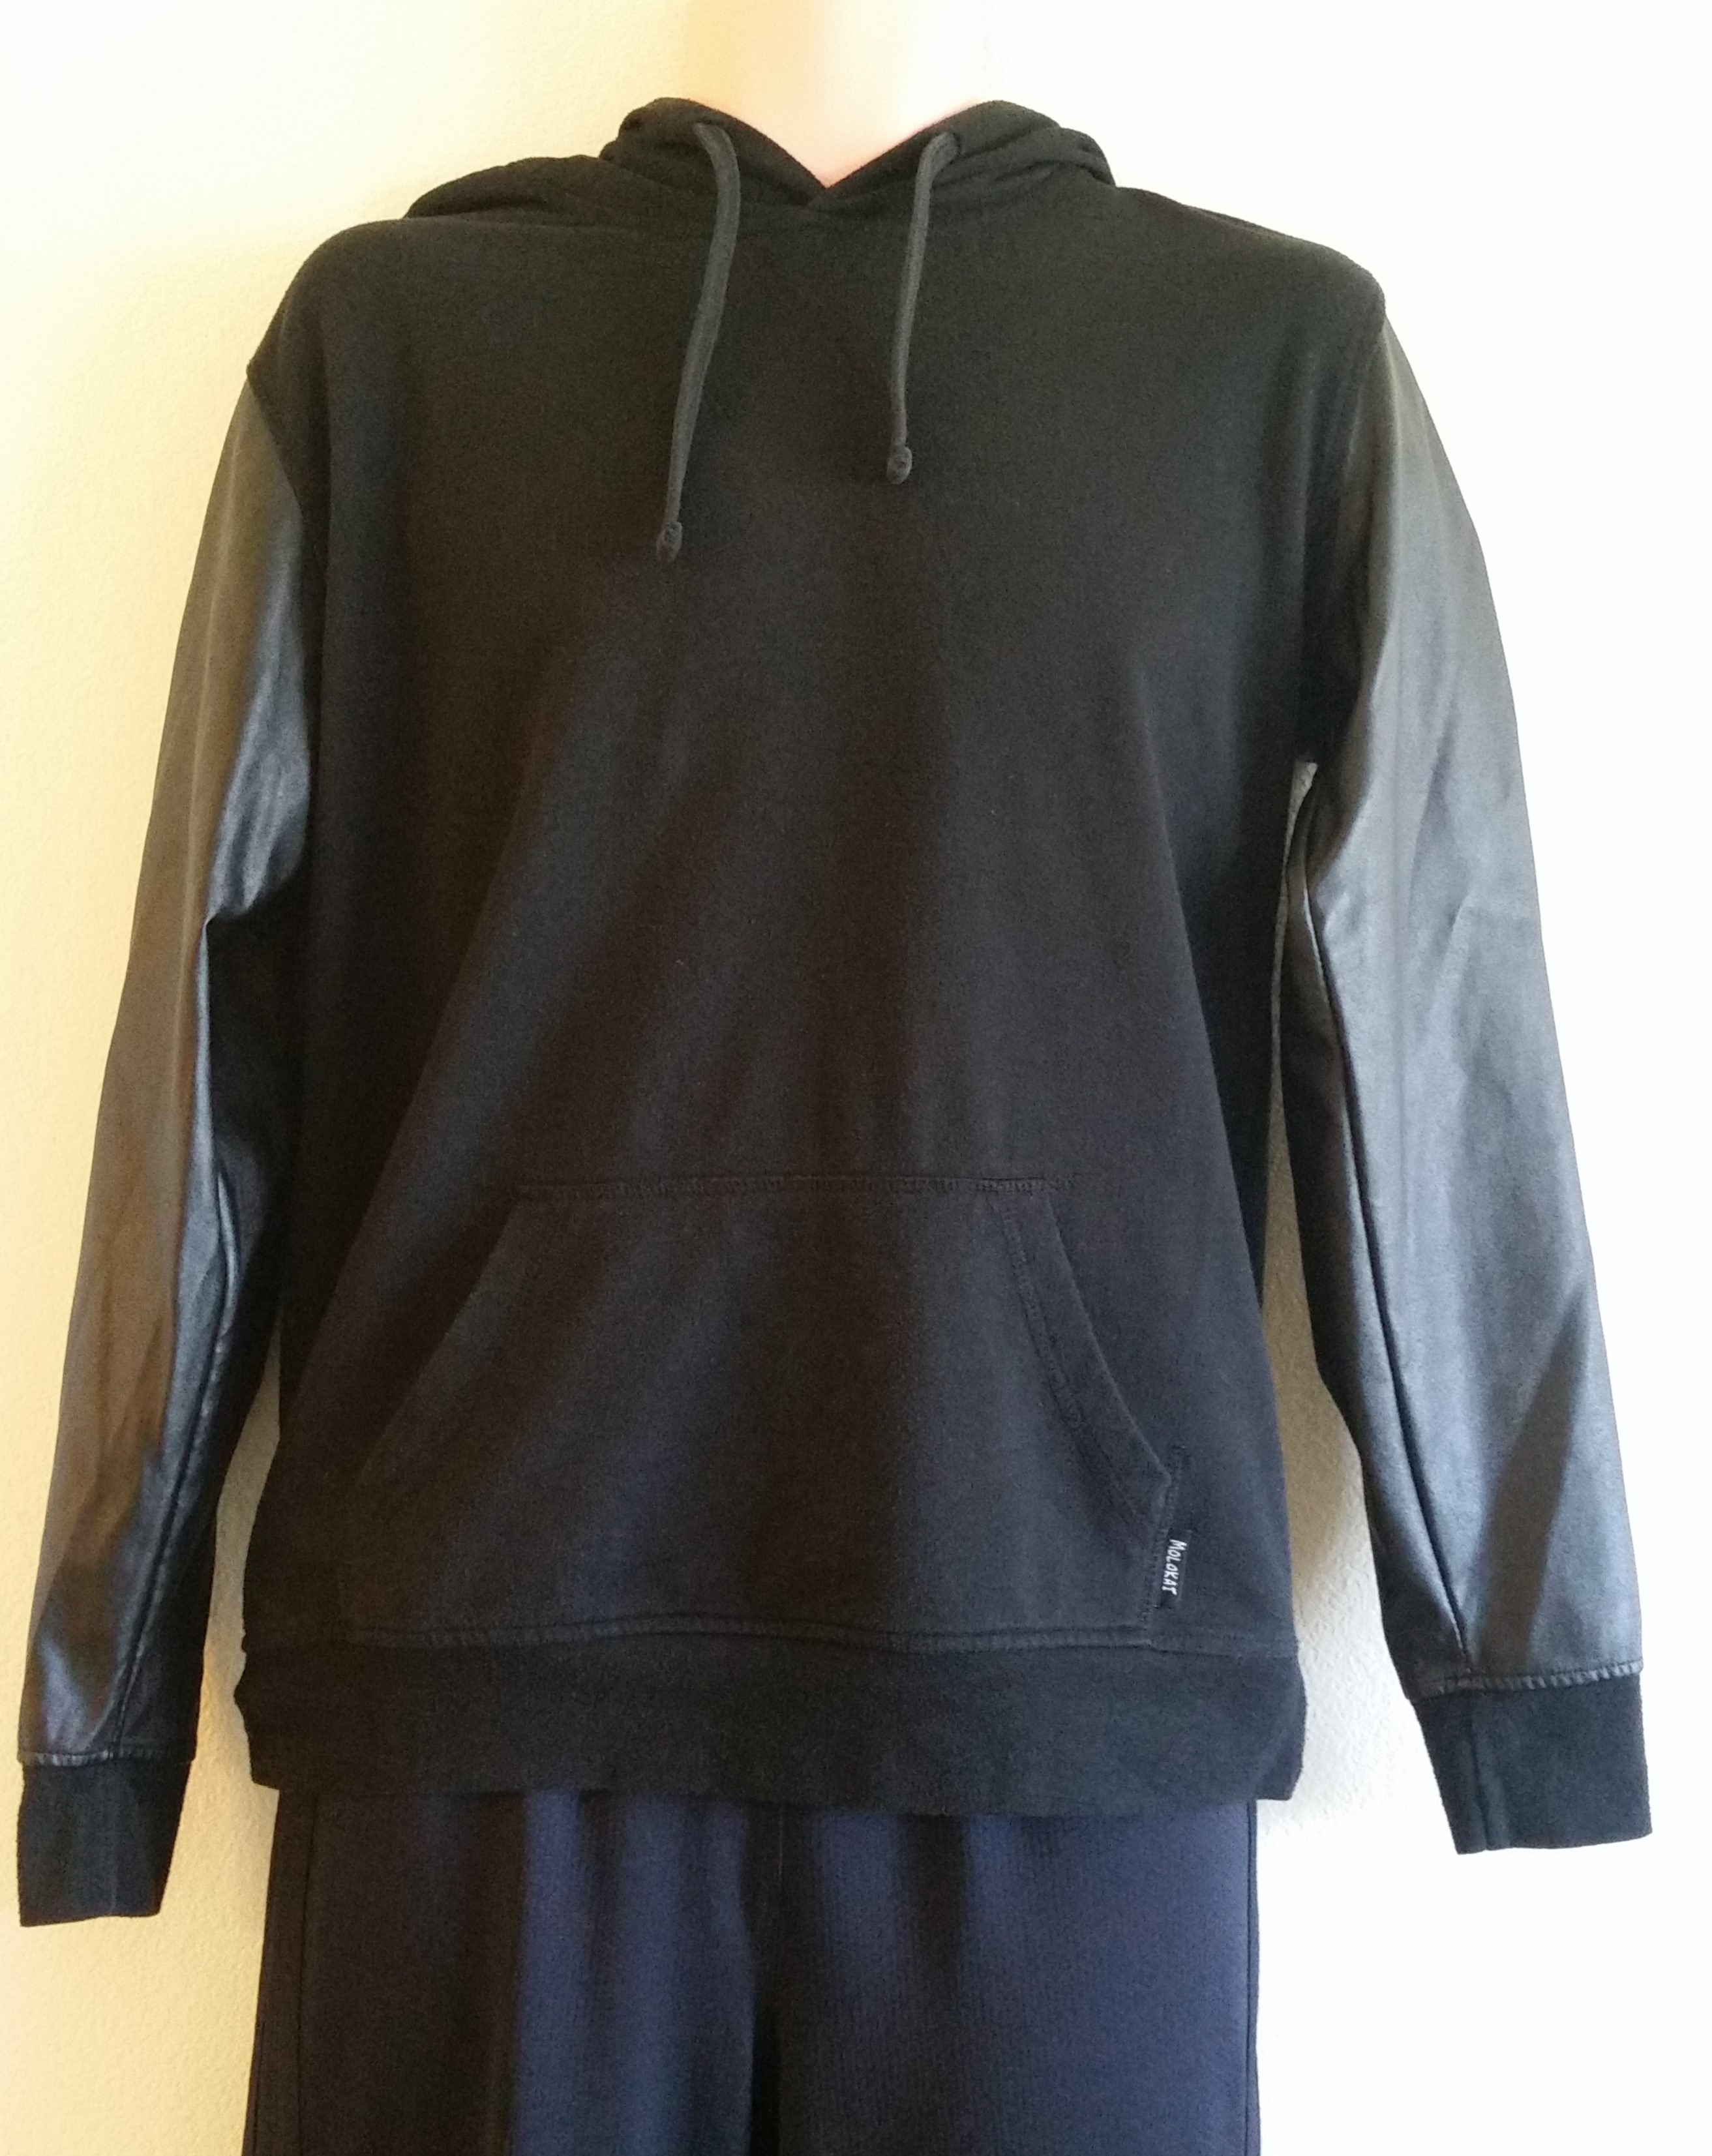 Pre-Owned Hoodie Pullover Size S/M - $5